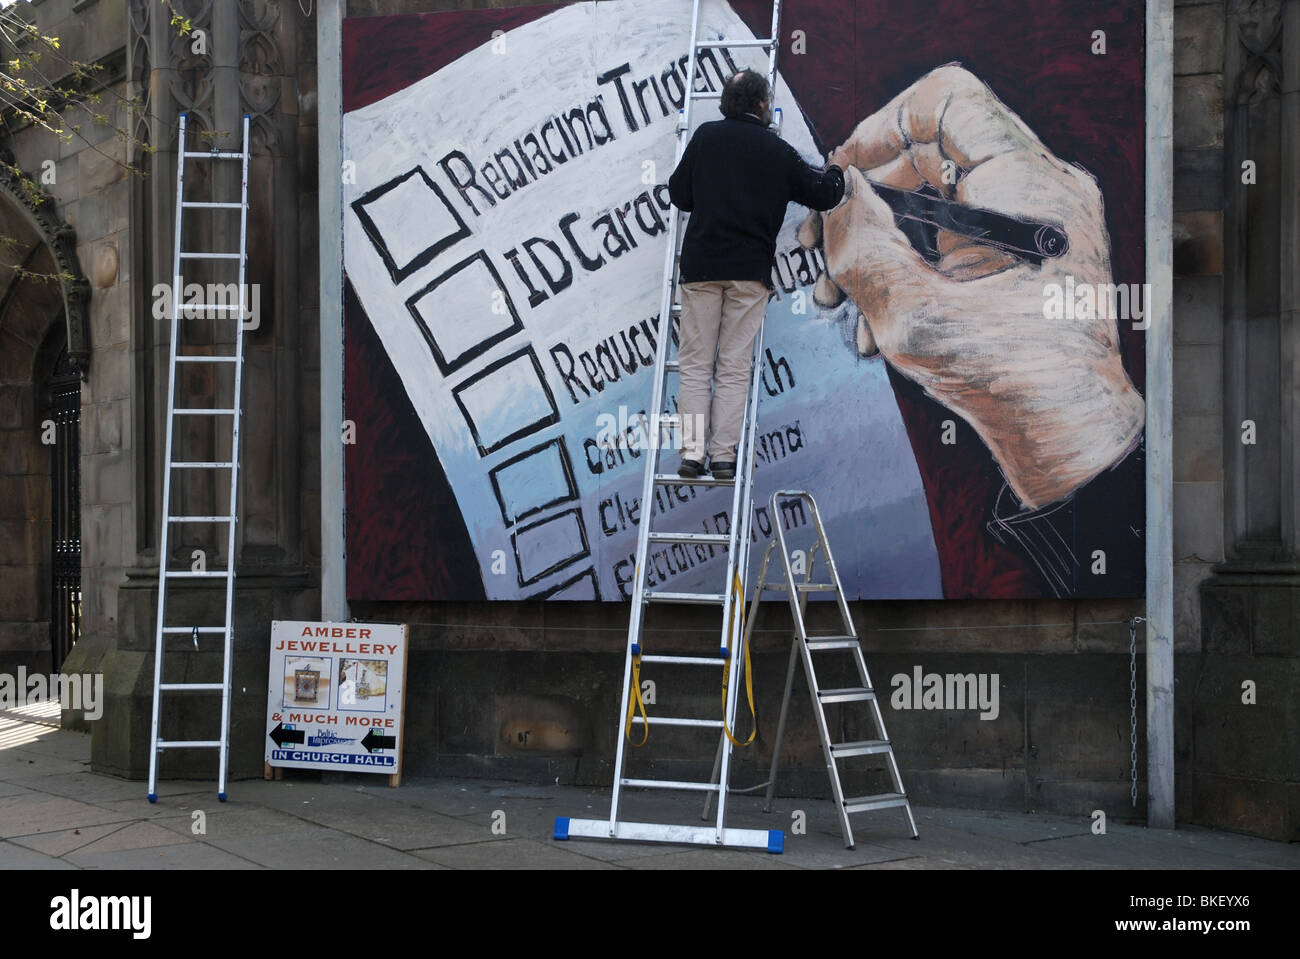 A mural being painted on a church wall commenting on the issues of the upcoming election in the United Kingdom. - Stock Image